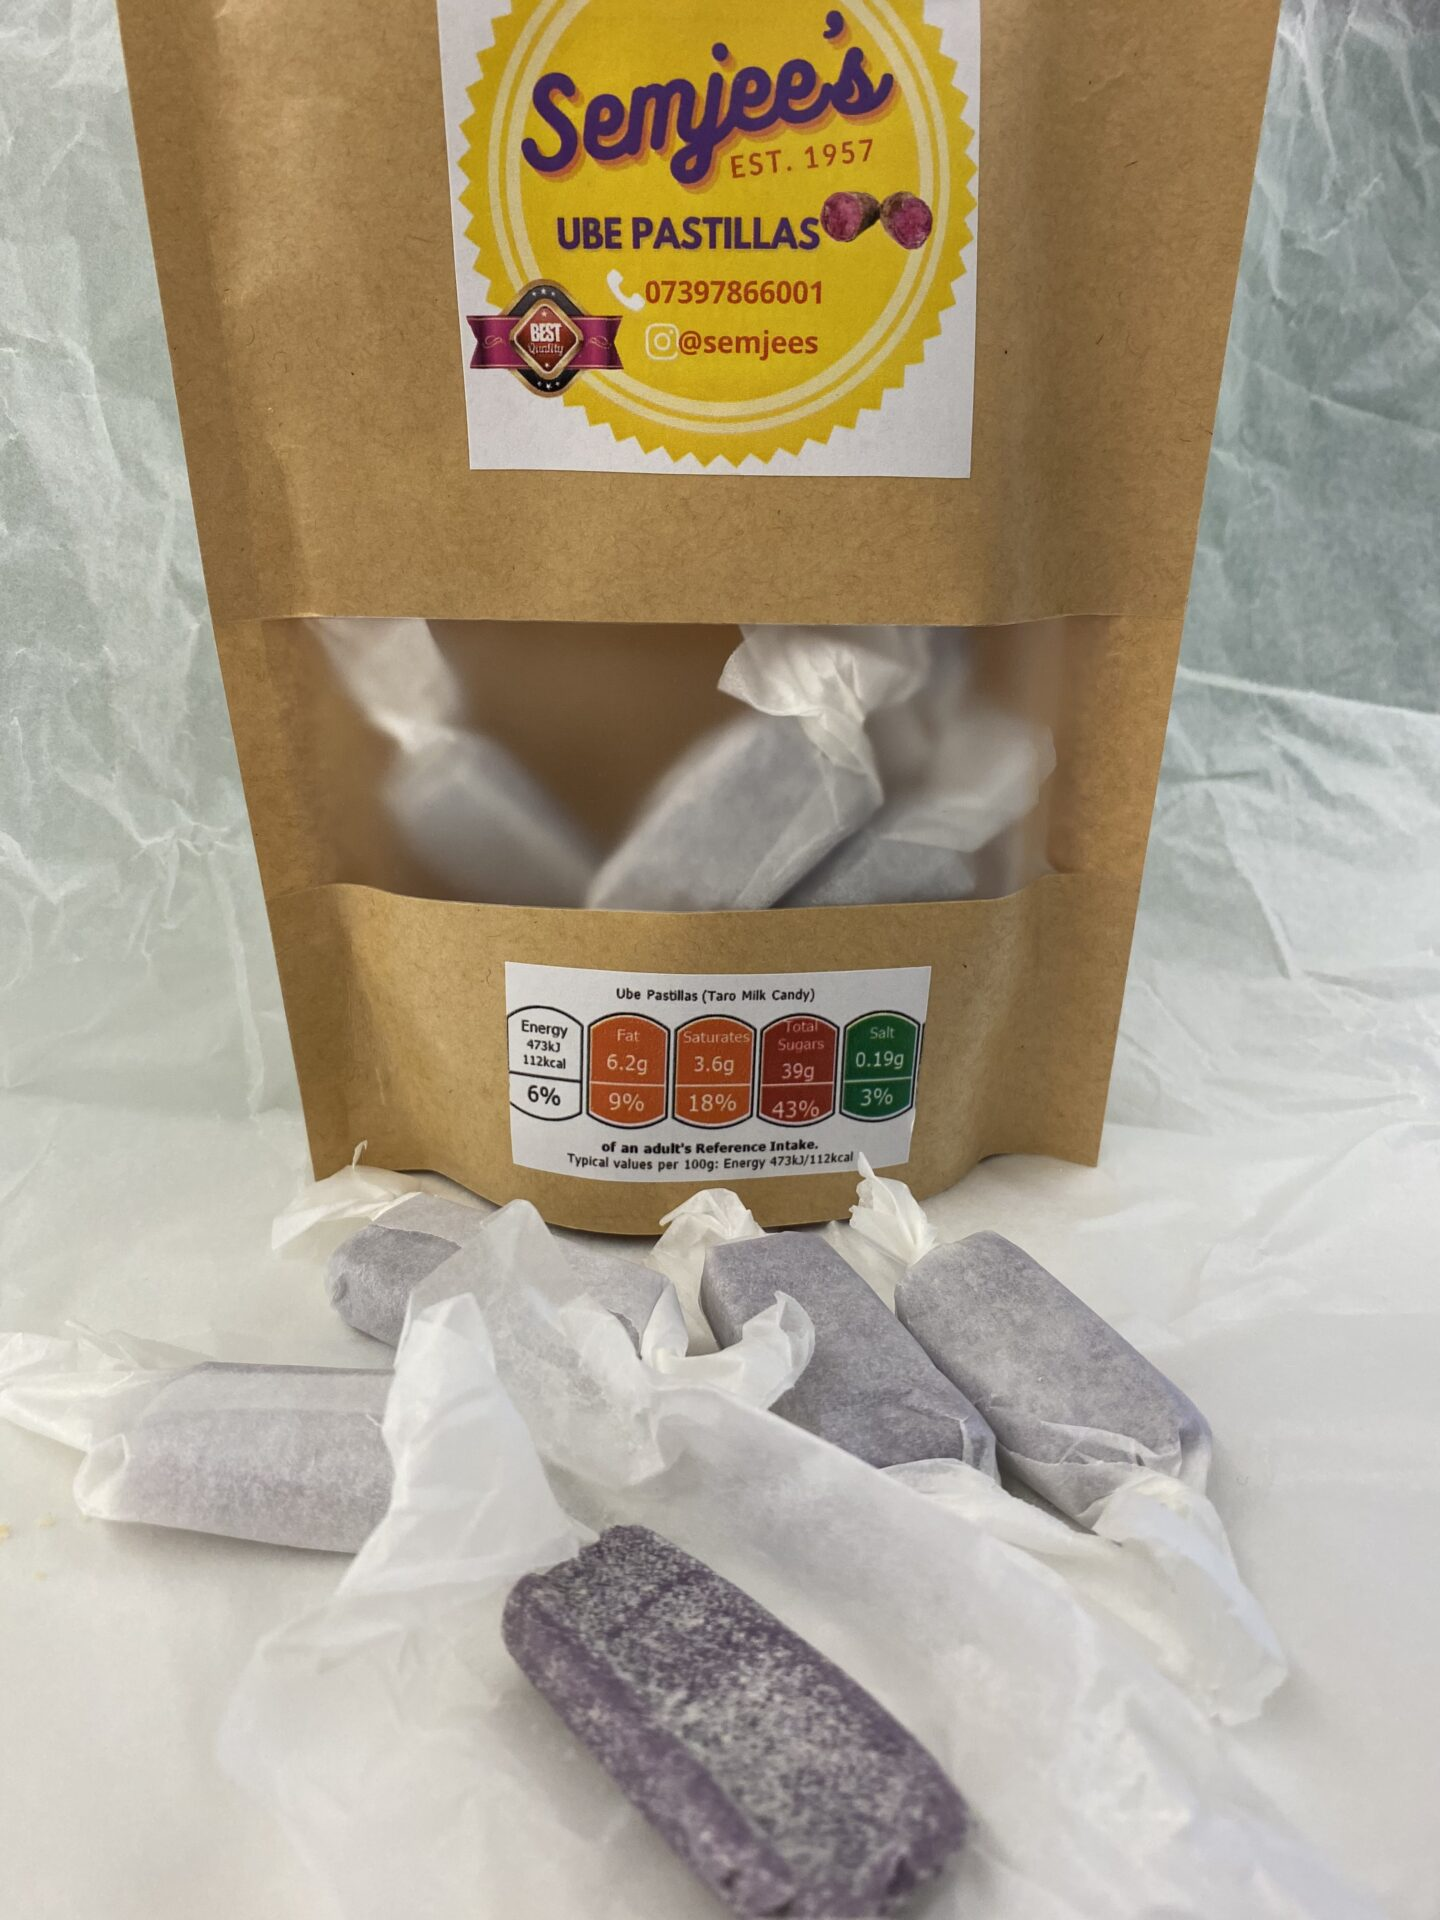 Semjees Ube Pastillas are pictured here with a few out of the packaging and one unwrapped.